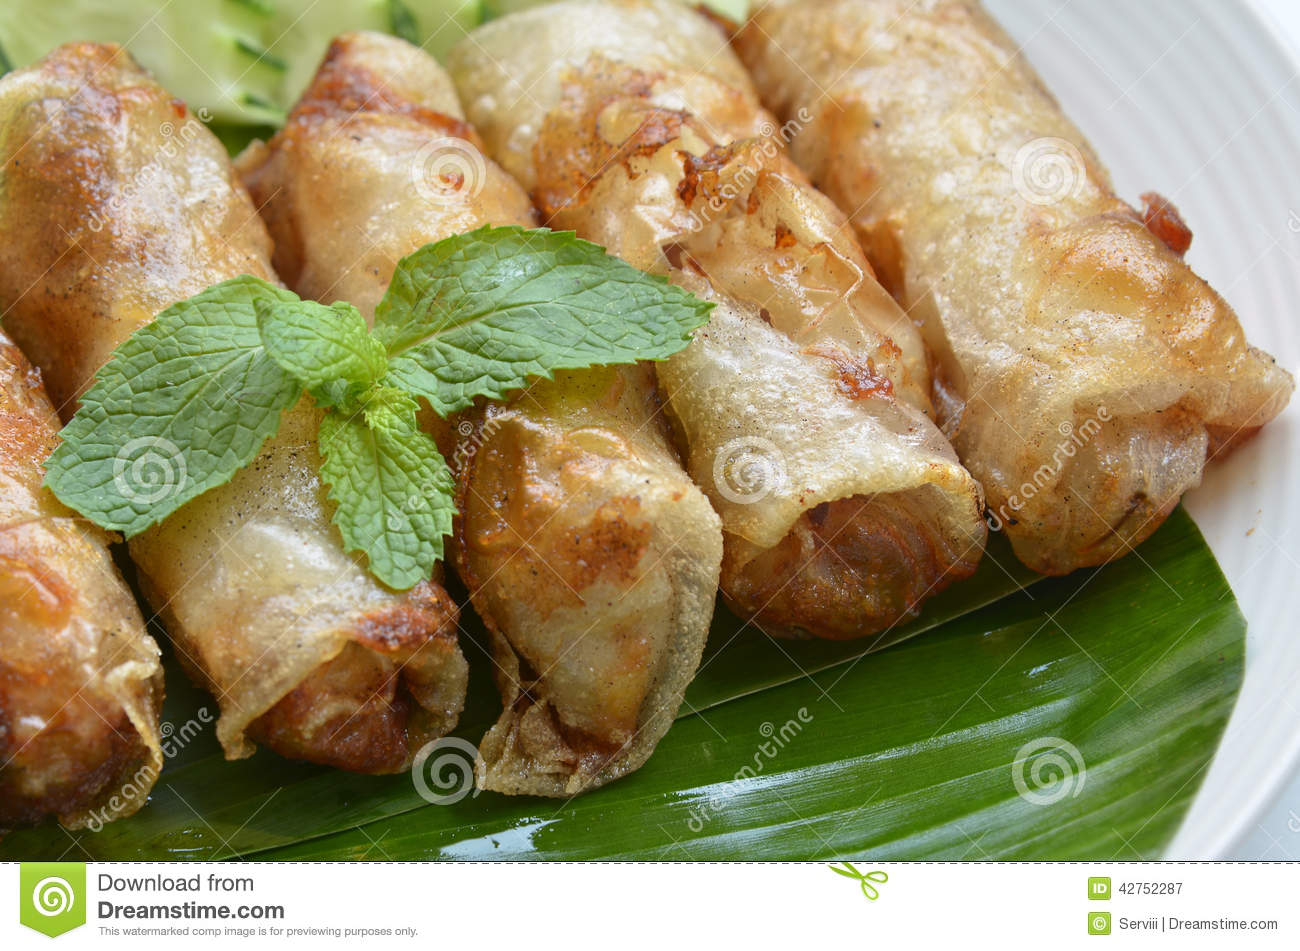 Fried Egg Rolls Of Vietnamese Cuisine Stock Photo - Image: 42752287